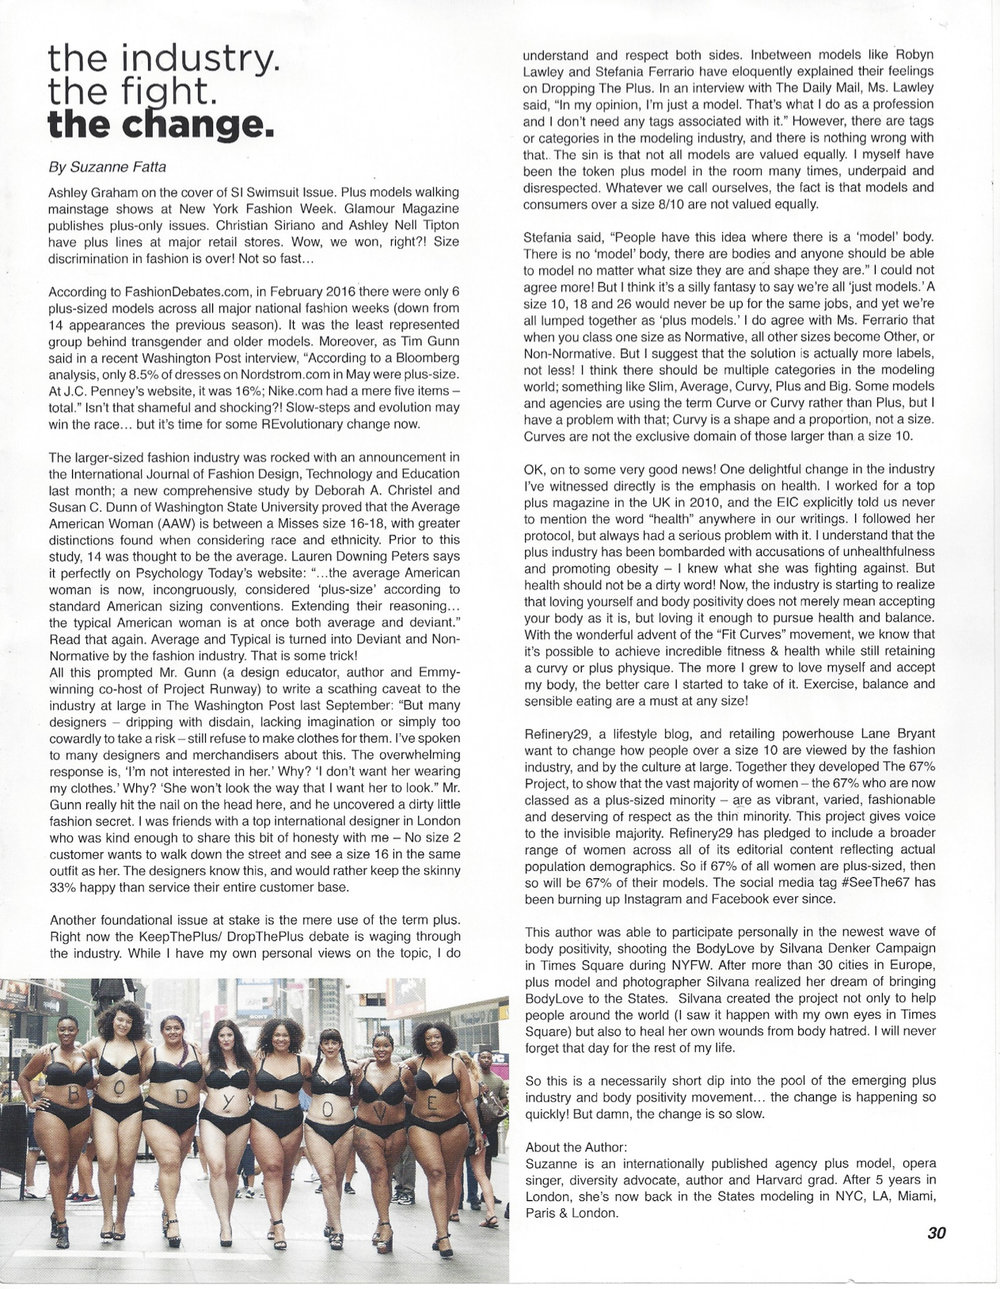 Mirabella Magazine article